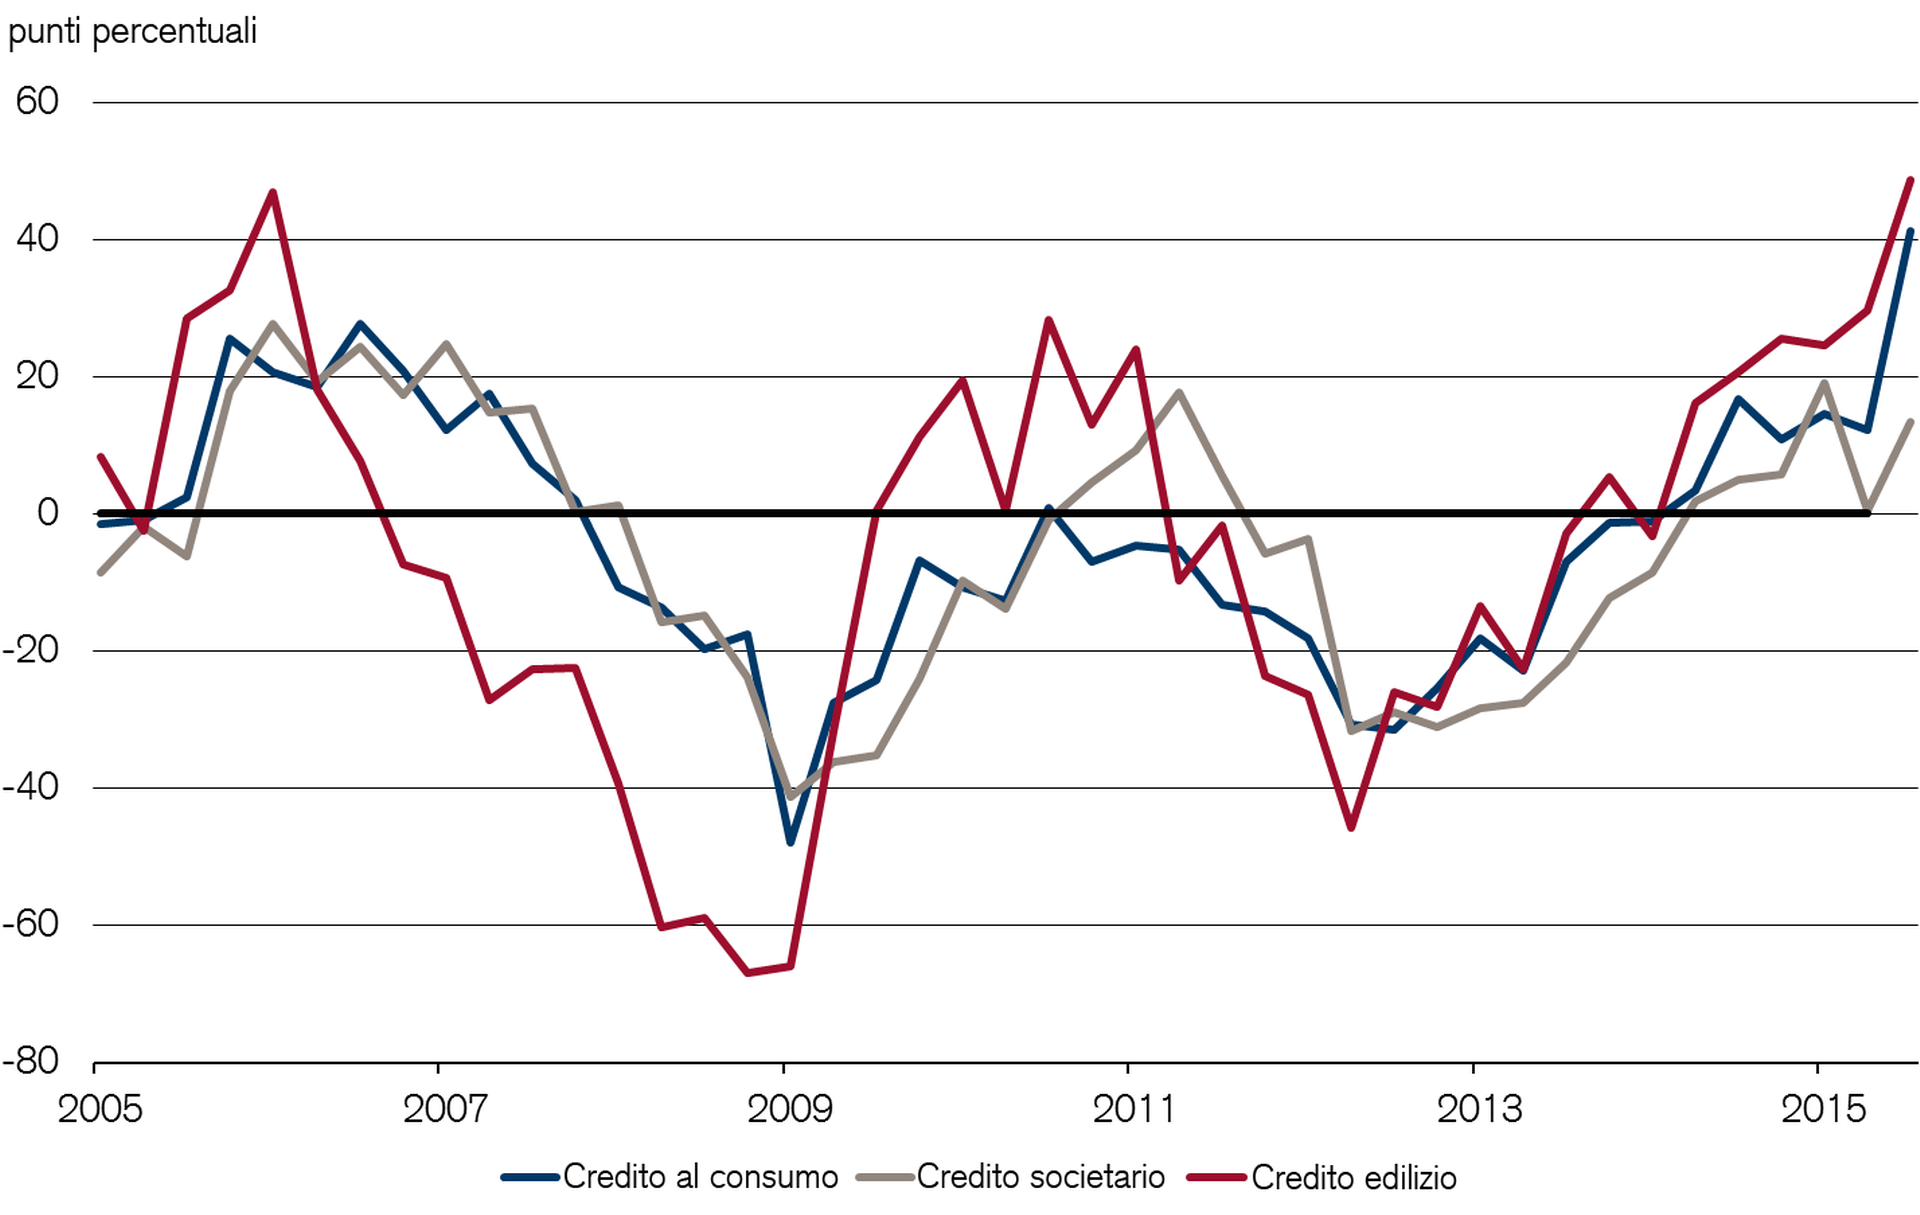 Credit demand in the Eurozone has increased substantially